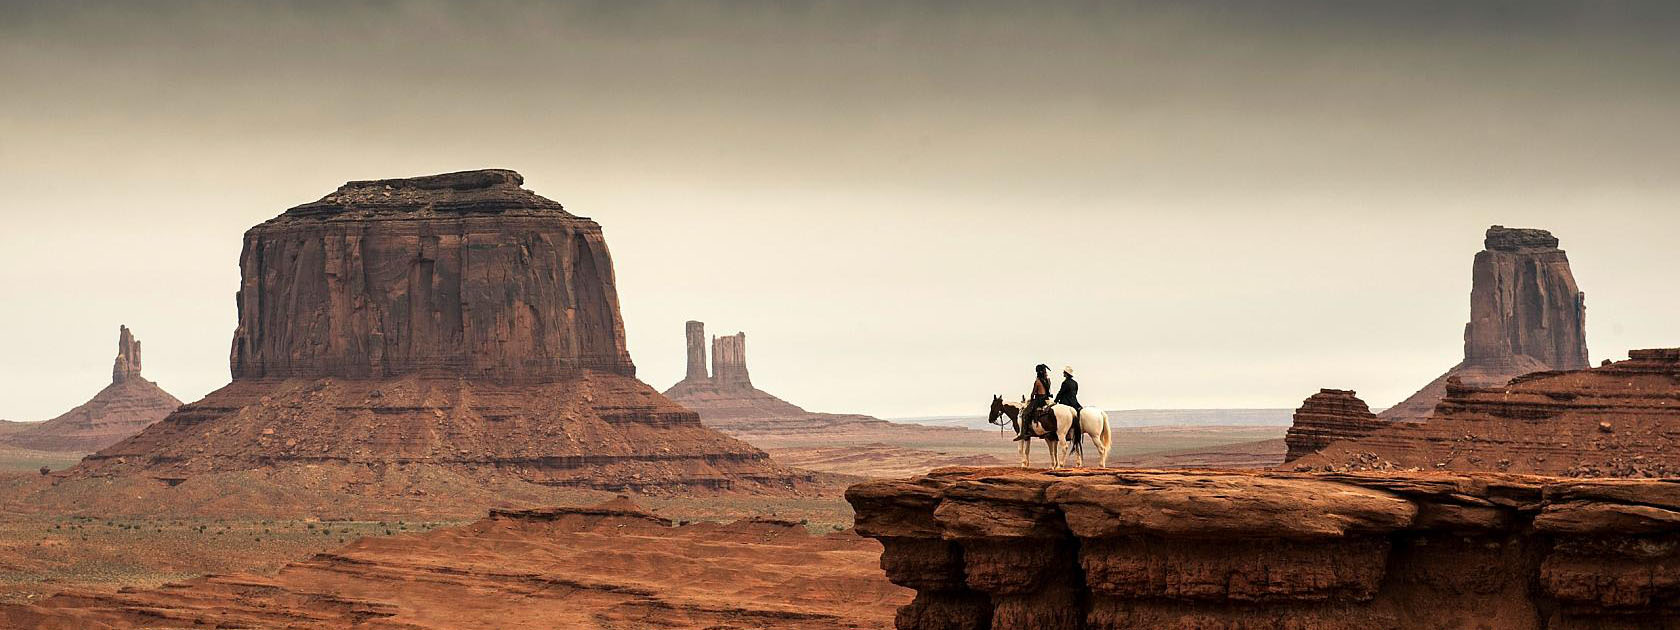 The Spirit of the Old West